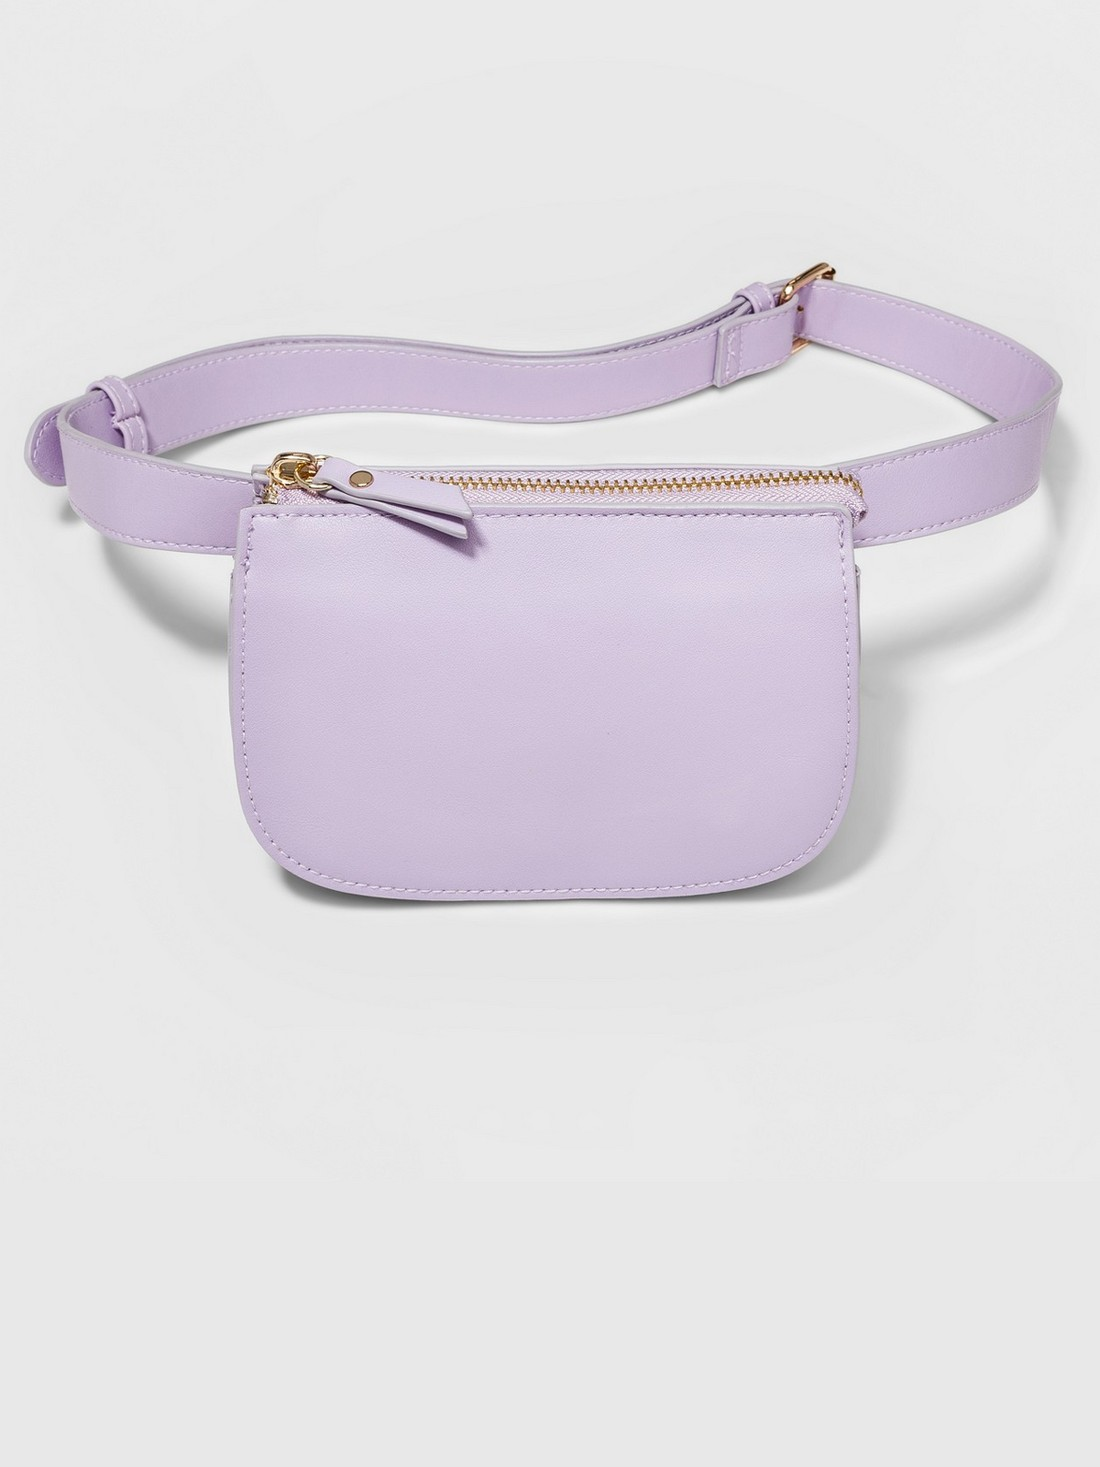 A New Day Women's Fanny Pack